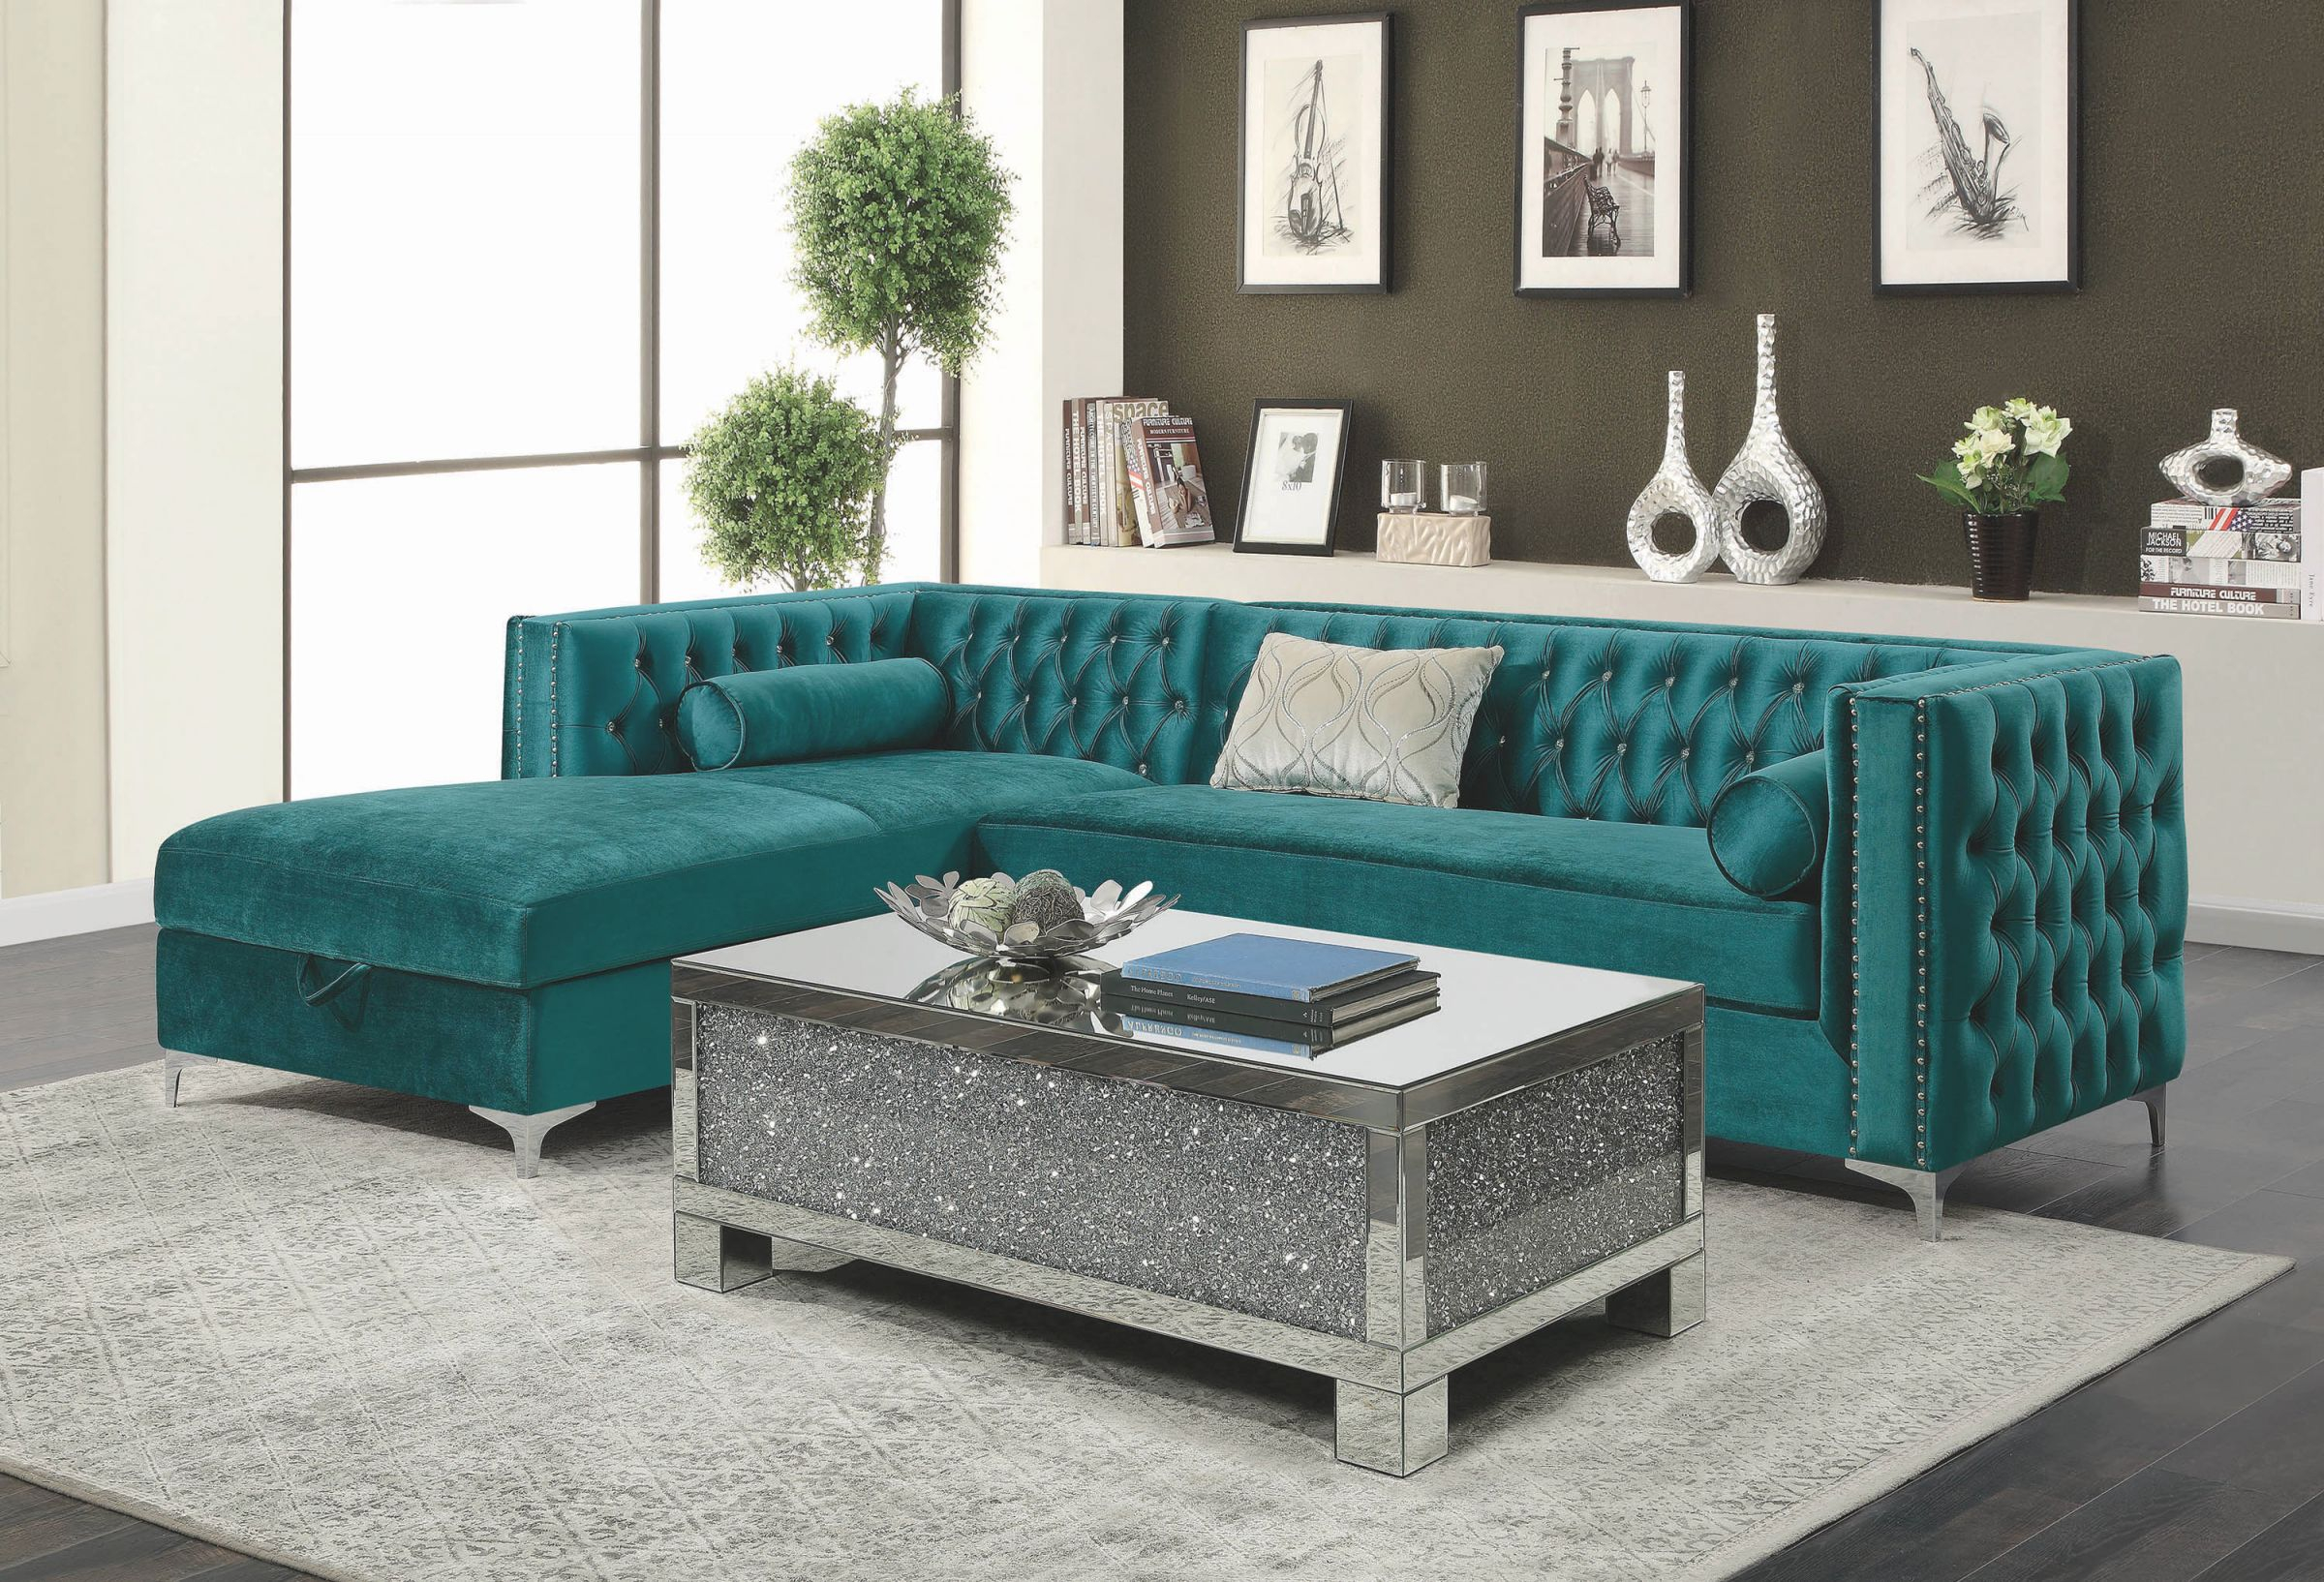 Bellaire Glam Luxurious Teal Green Velvet Fabric Sofa Sectional W/ Jeweled Tufting, Nailhead Trim & Storage Chaise in Elegant Teal Living Room Furniture